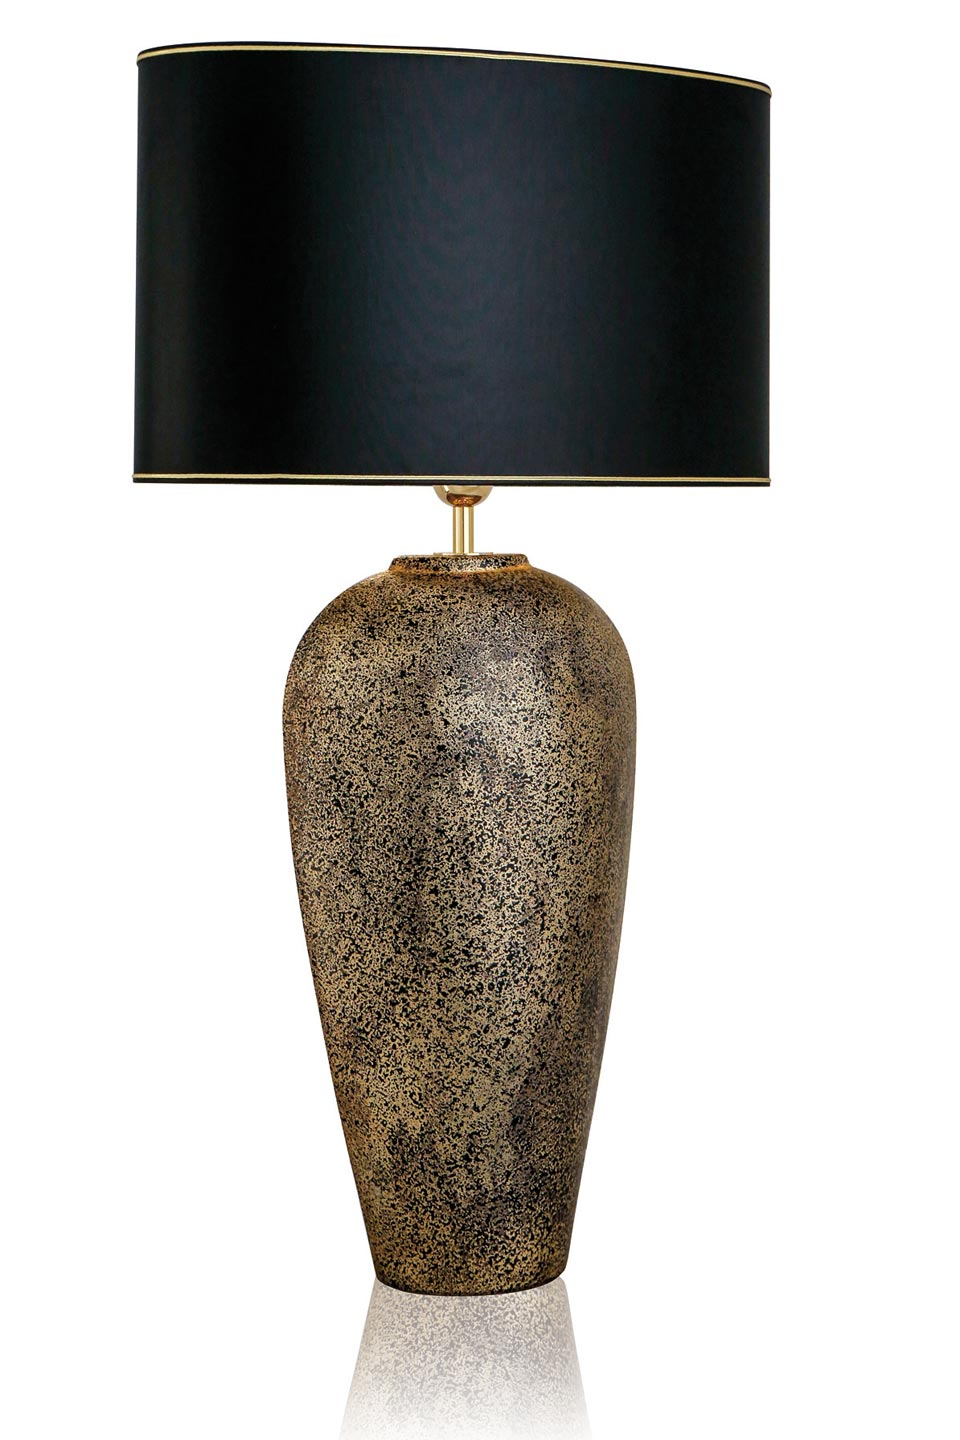 Black And Gold Mottled Ceramic Table Lamp And Cylindrical Blanc Lampshade With Gilt Edging